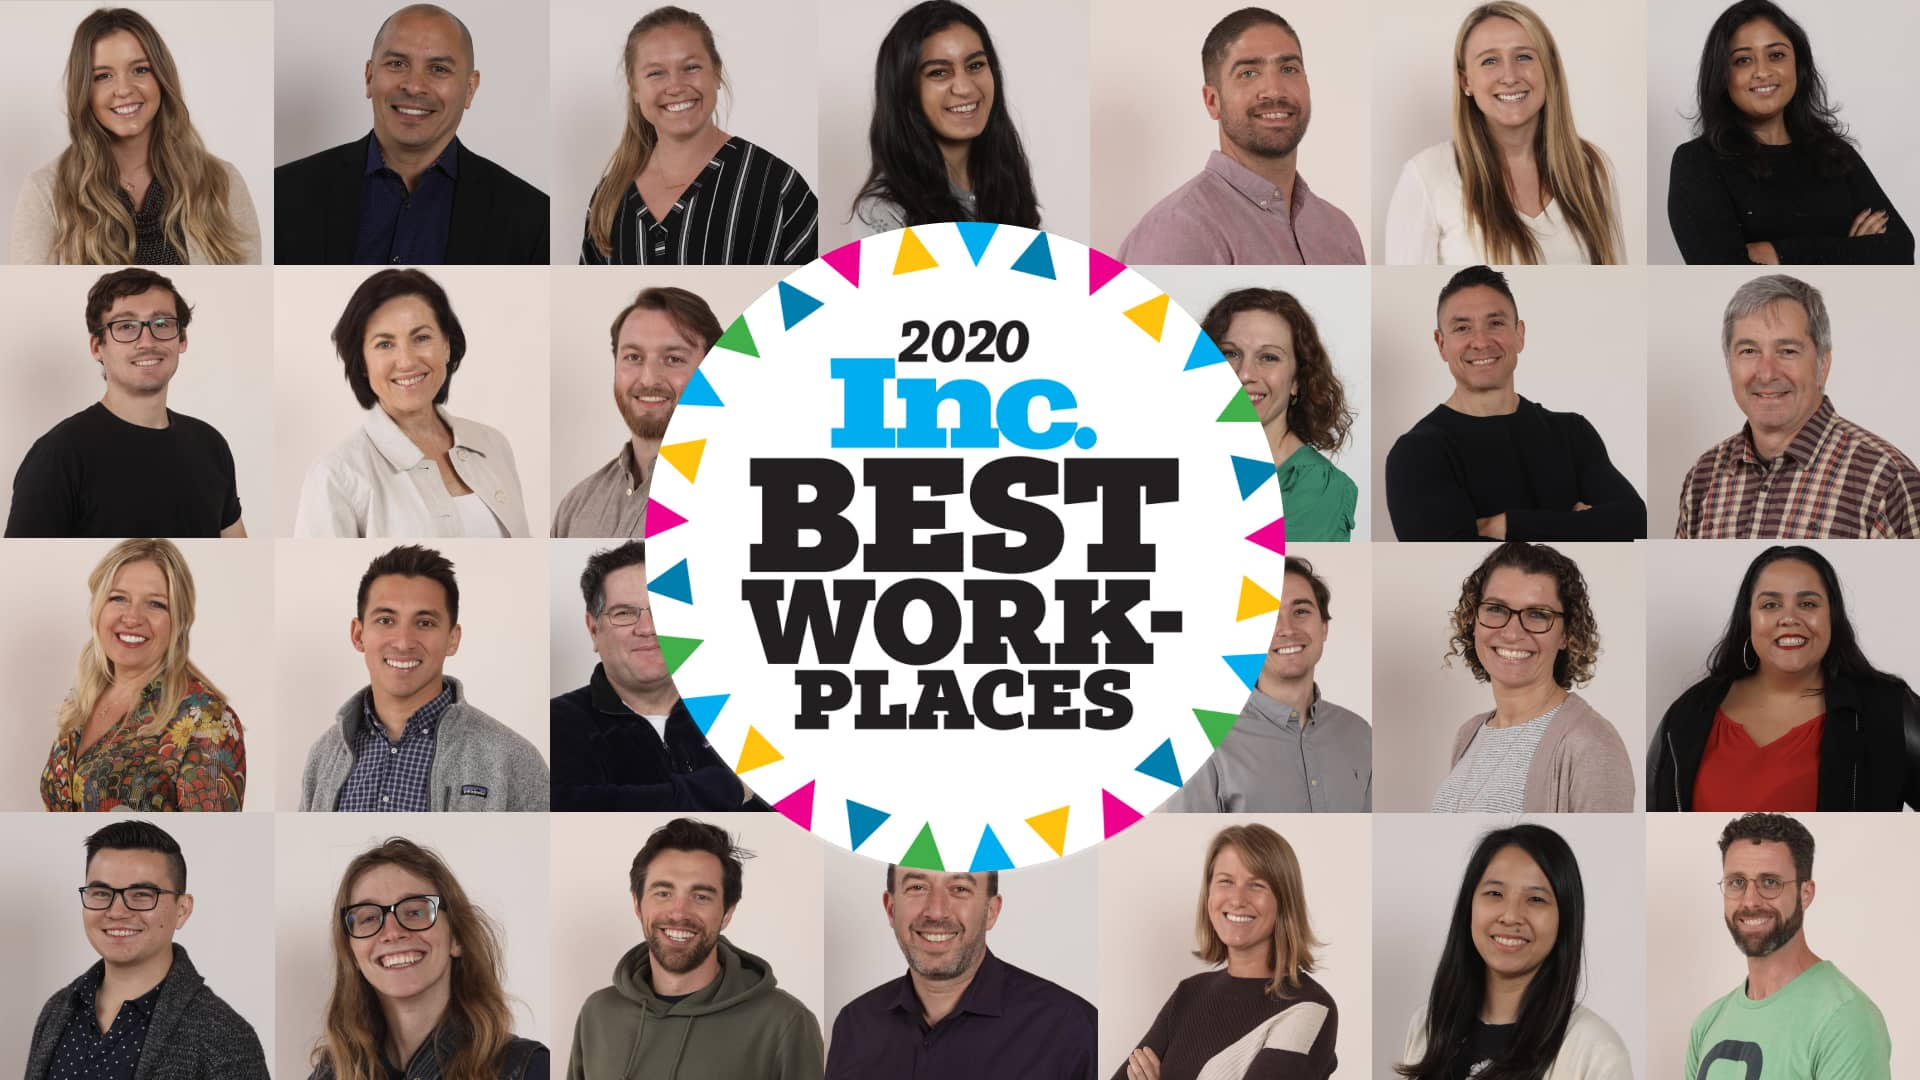 Invoca Named Inc. Best Workplace of 2020